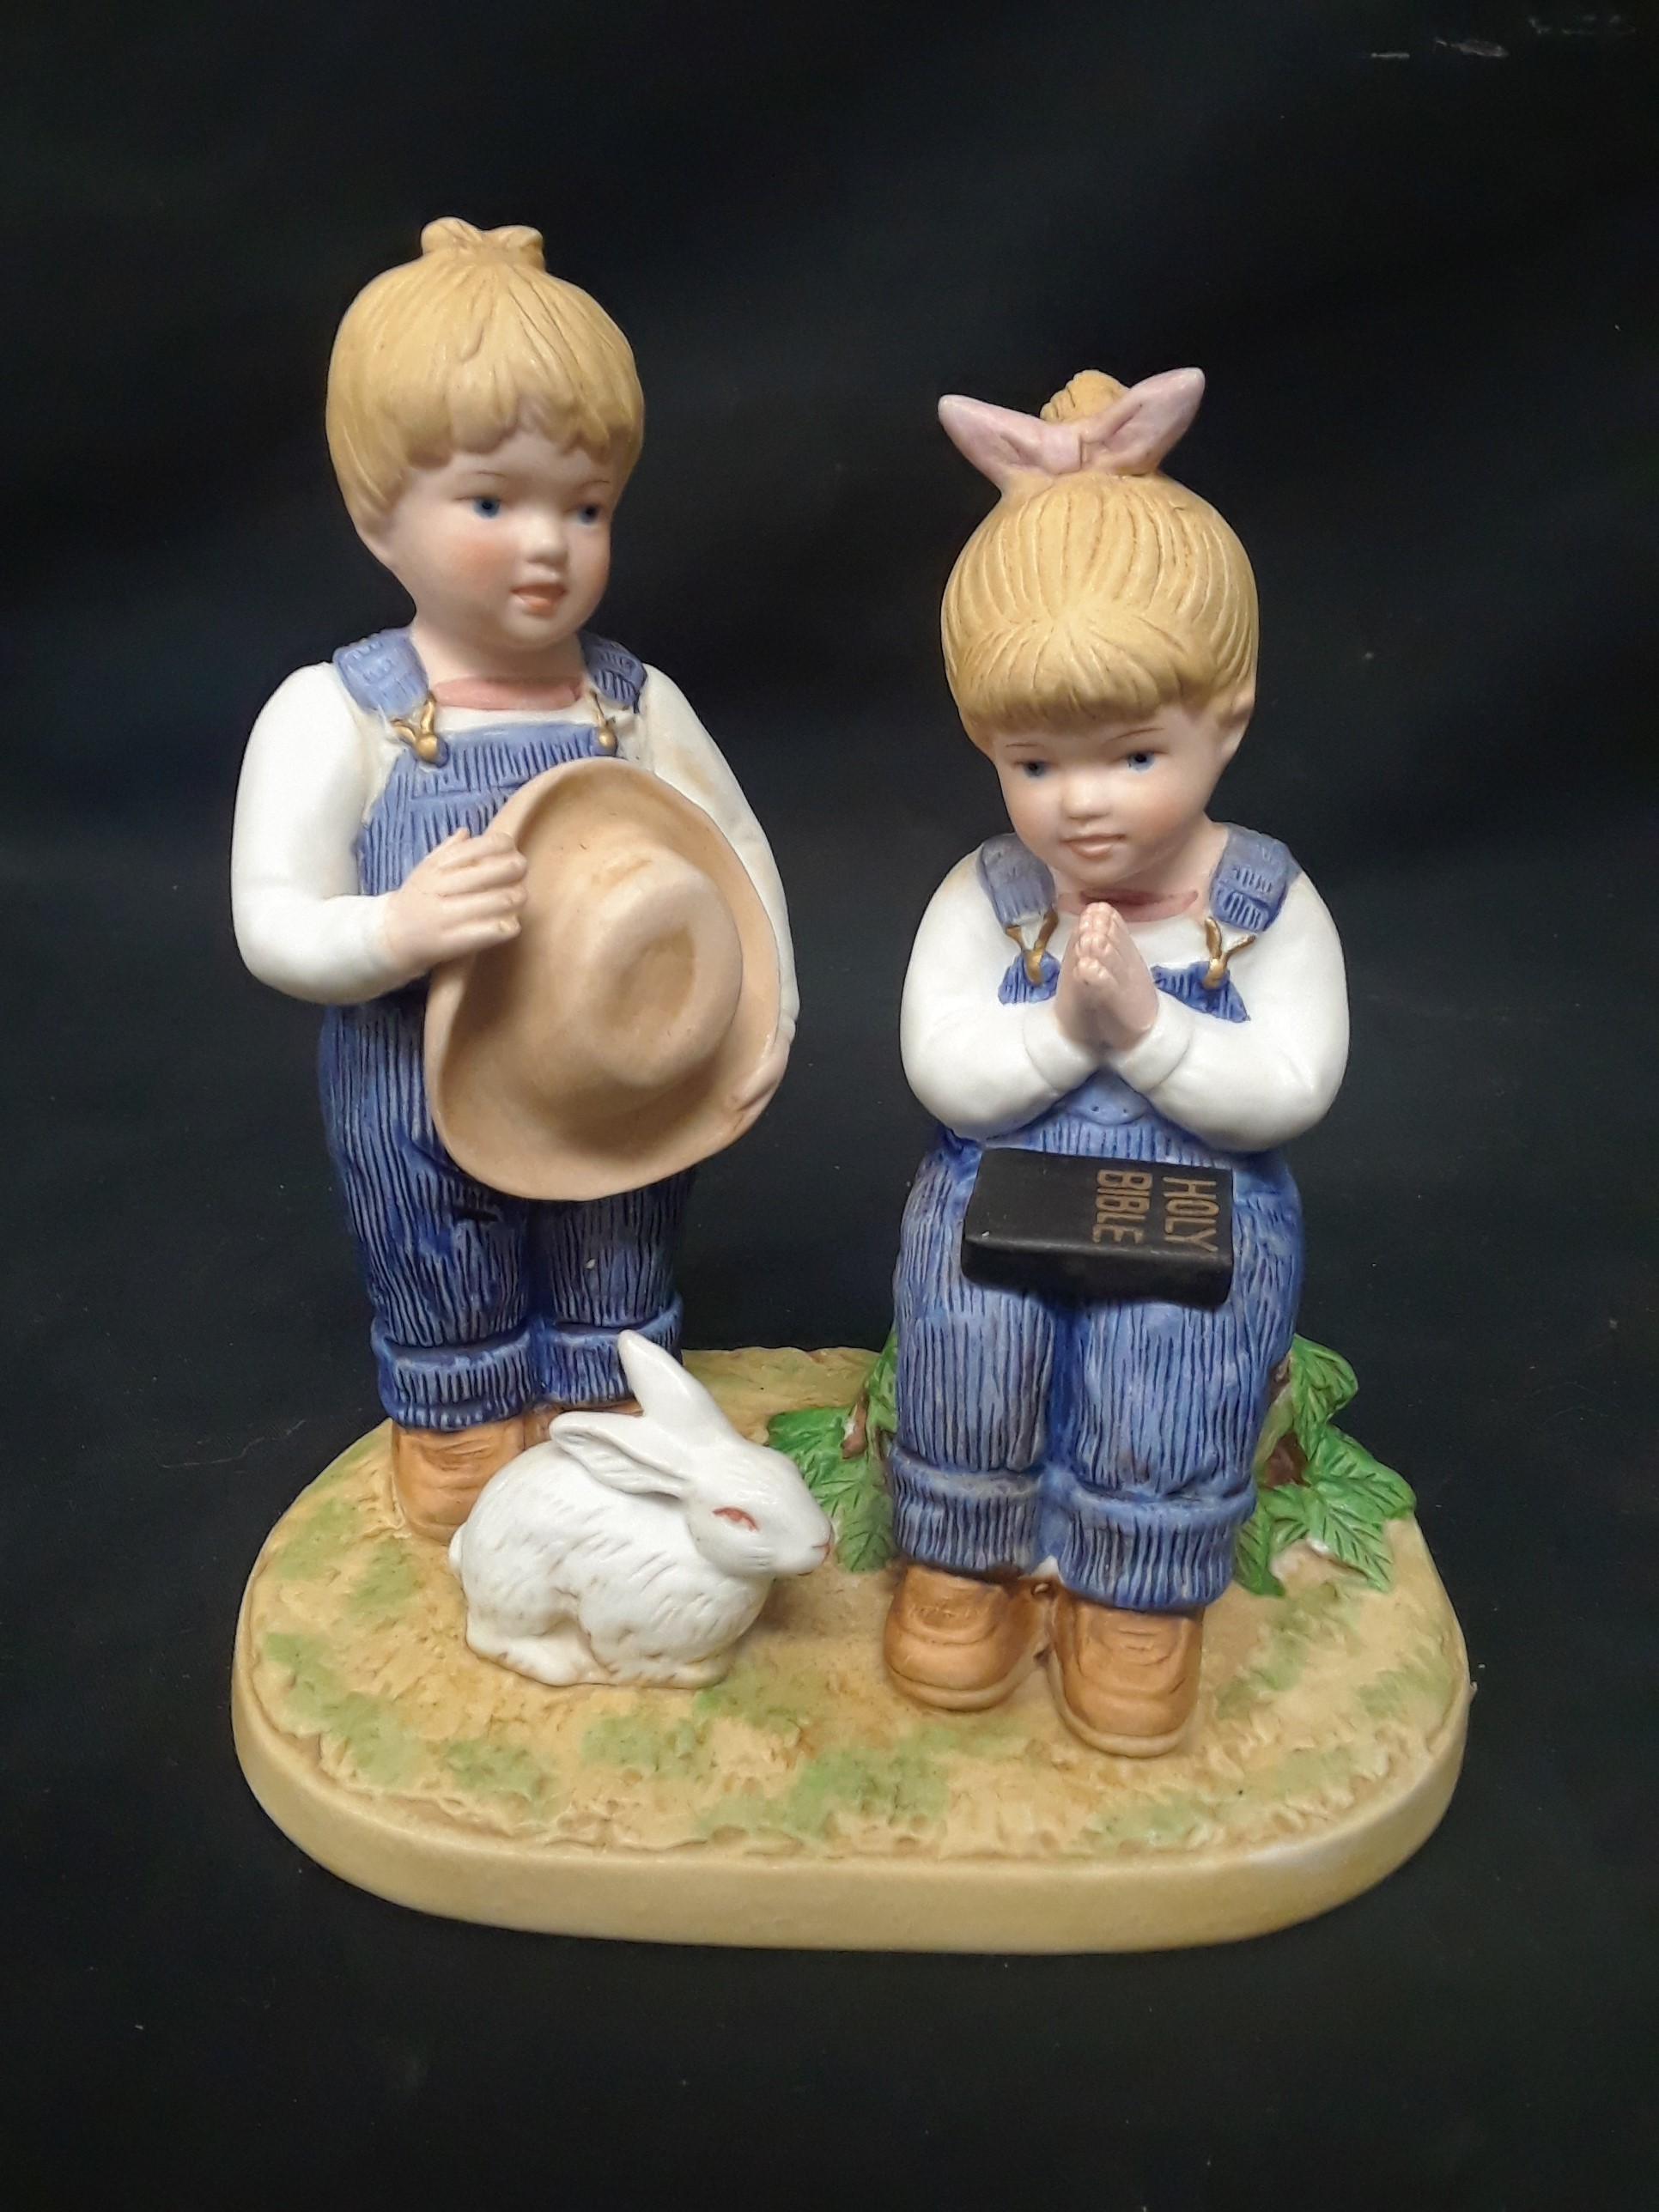 DENIM DAYS BY HOMCO 1985: TWO SMALL CHILDREN WITH A BUNNY